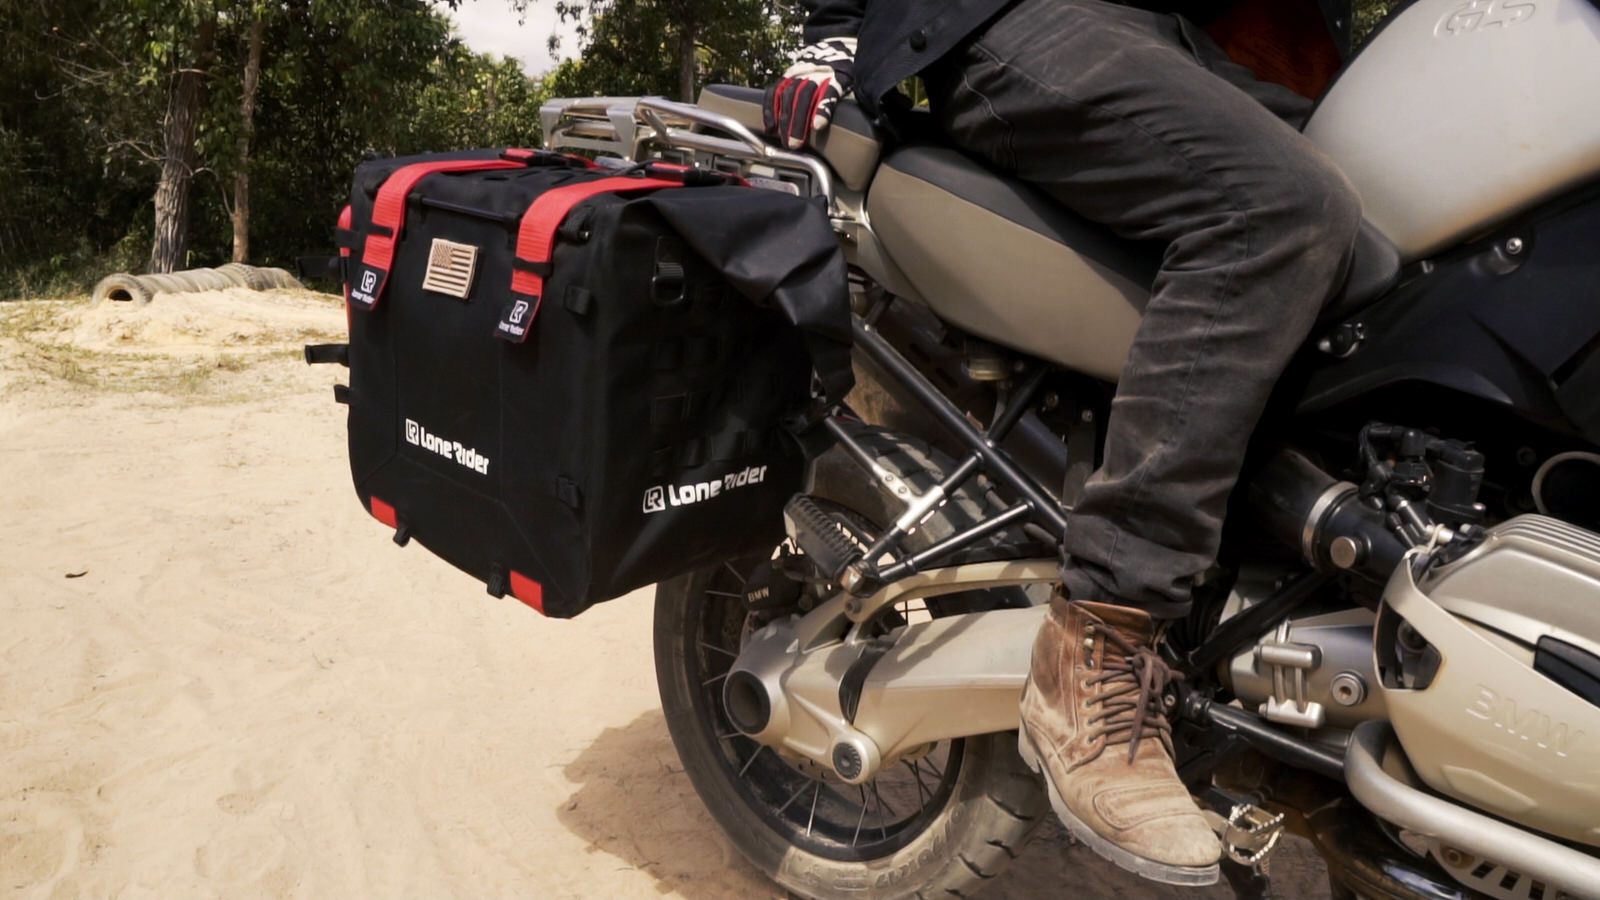 MotoBags - Semi Rigid Panniers for Motorcycle